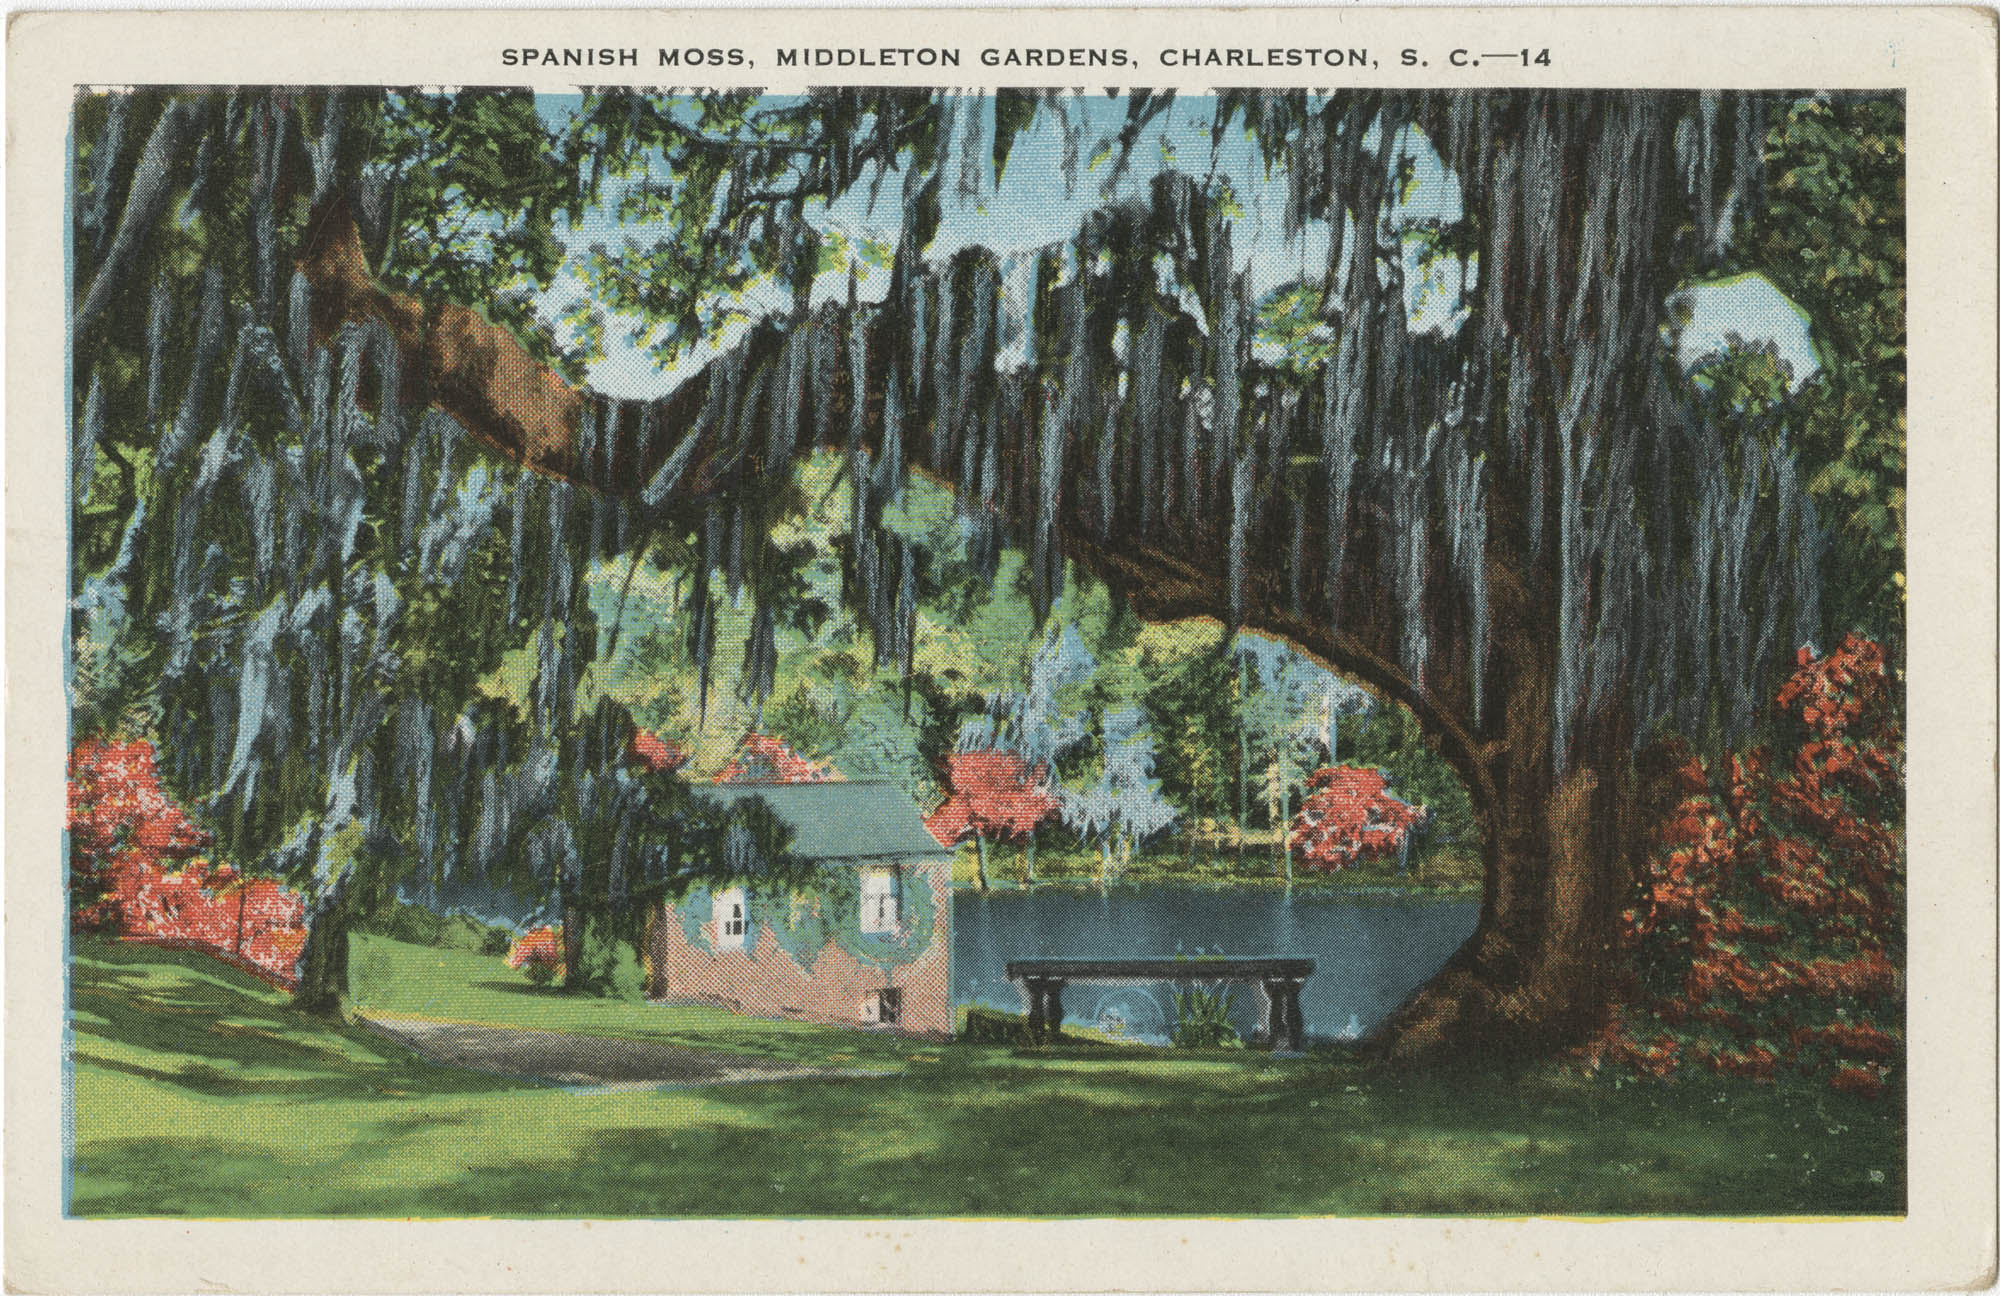 Spanish Moss, Middleton Gardens, Charleston, S.C.